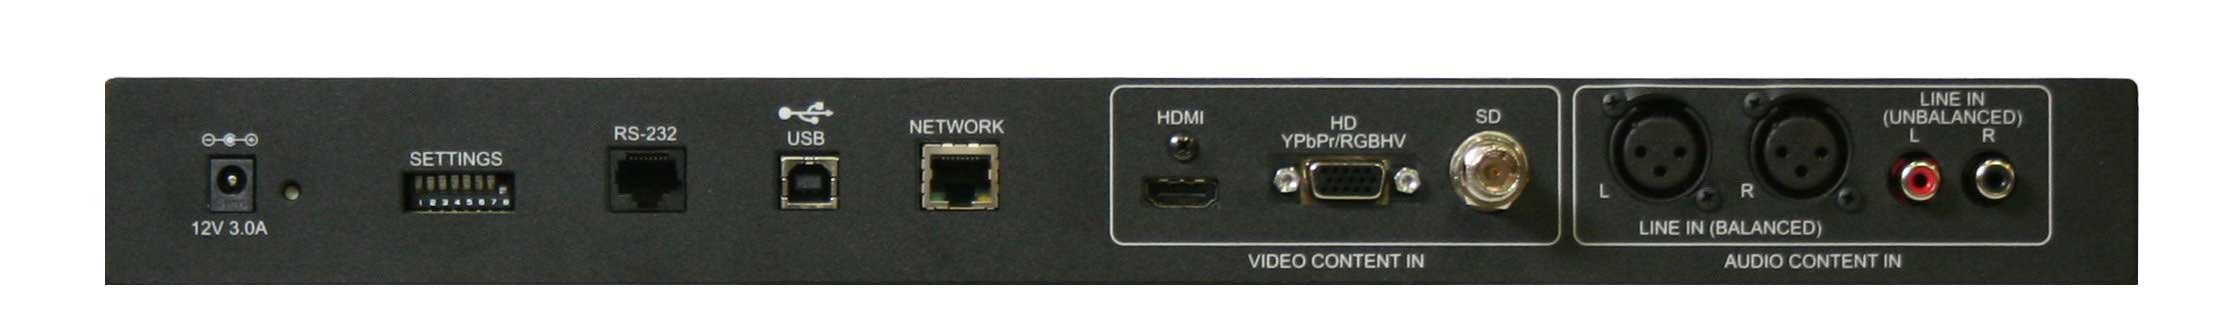 HD Video Encoder/Ethernet & USB